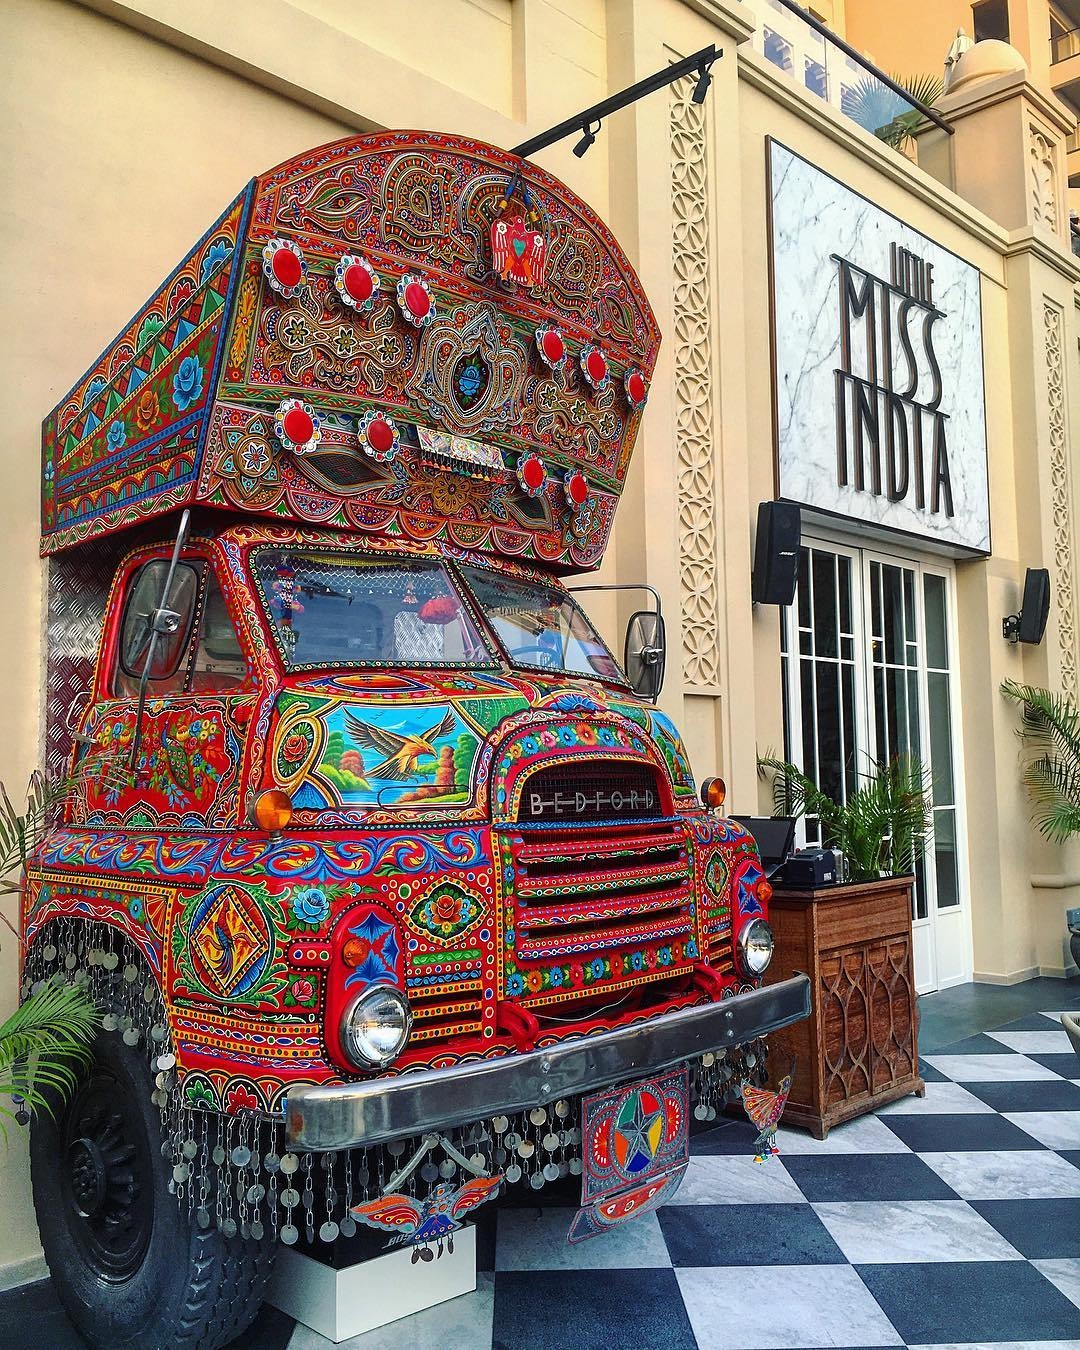 truck art little miss india